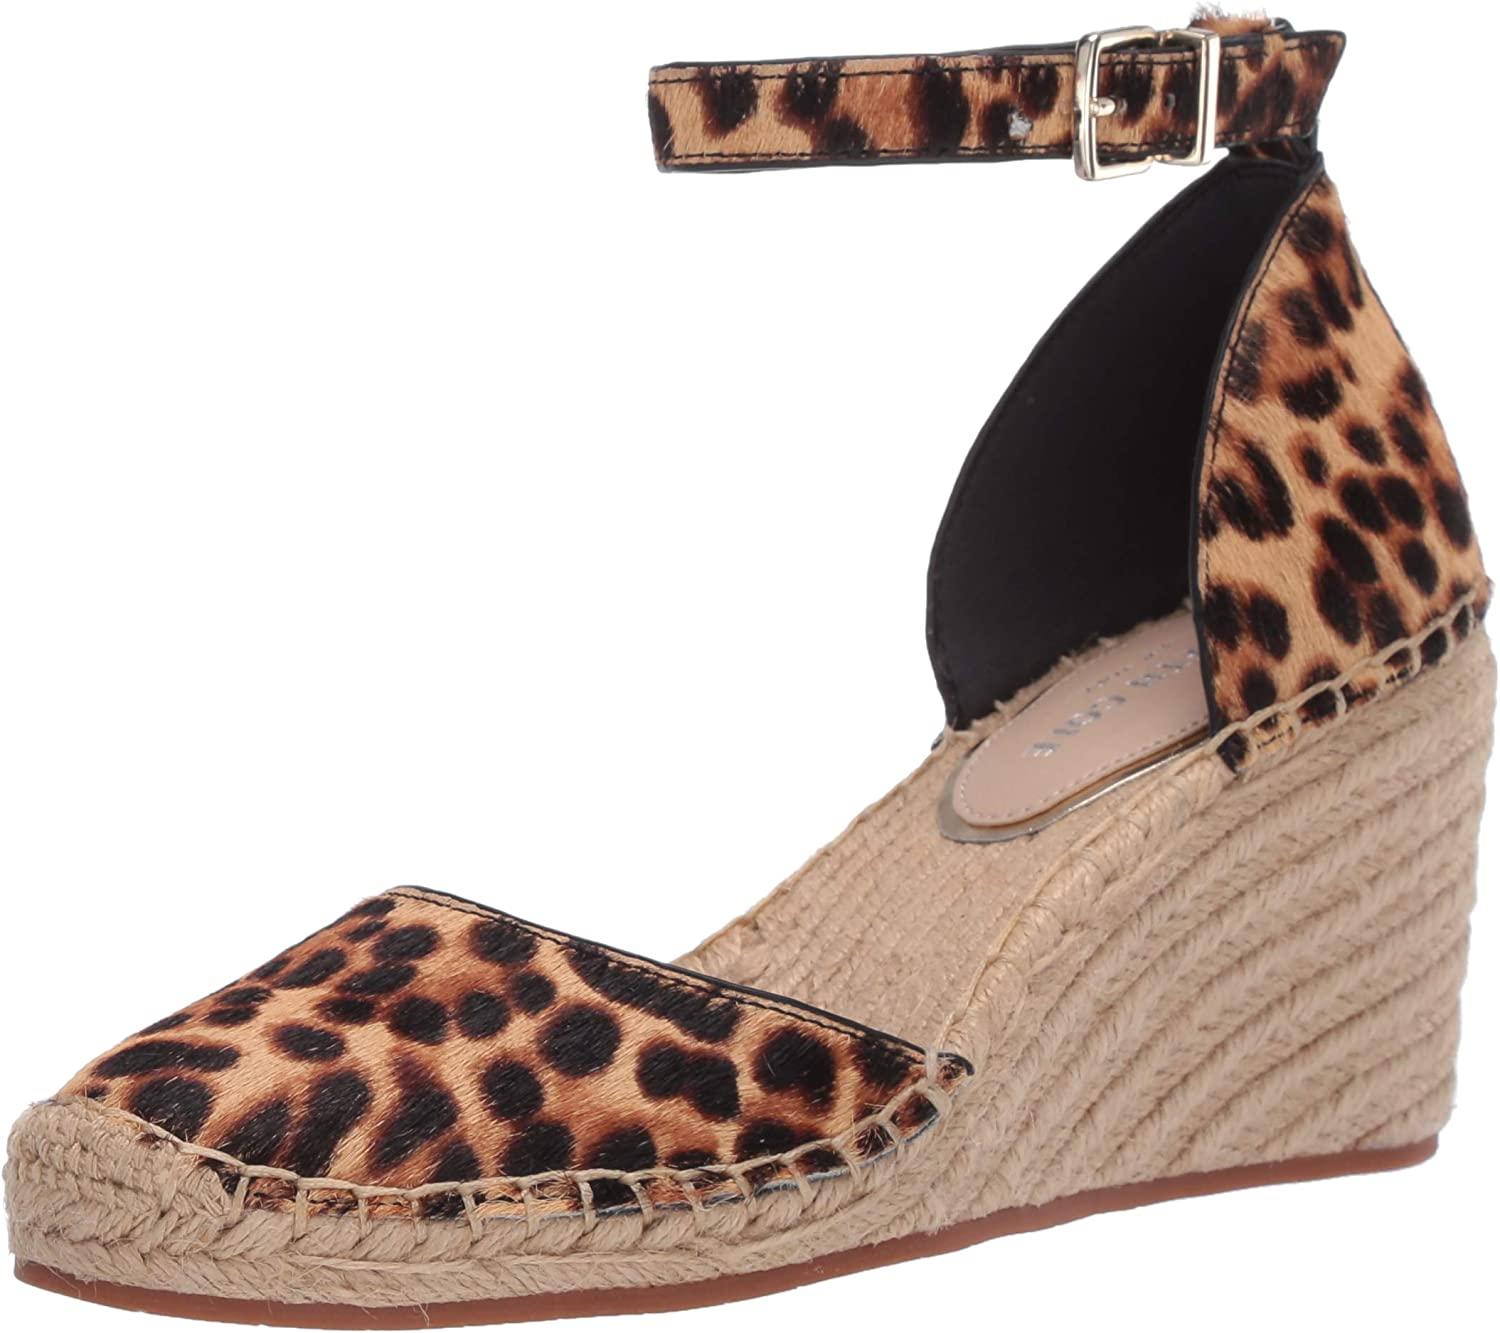 Popular shop is the lowest price Special price challenge Kenneth Cole New York Women's Wedge Sandal